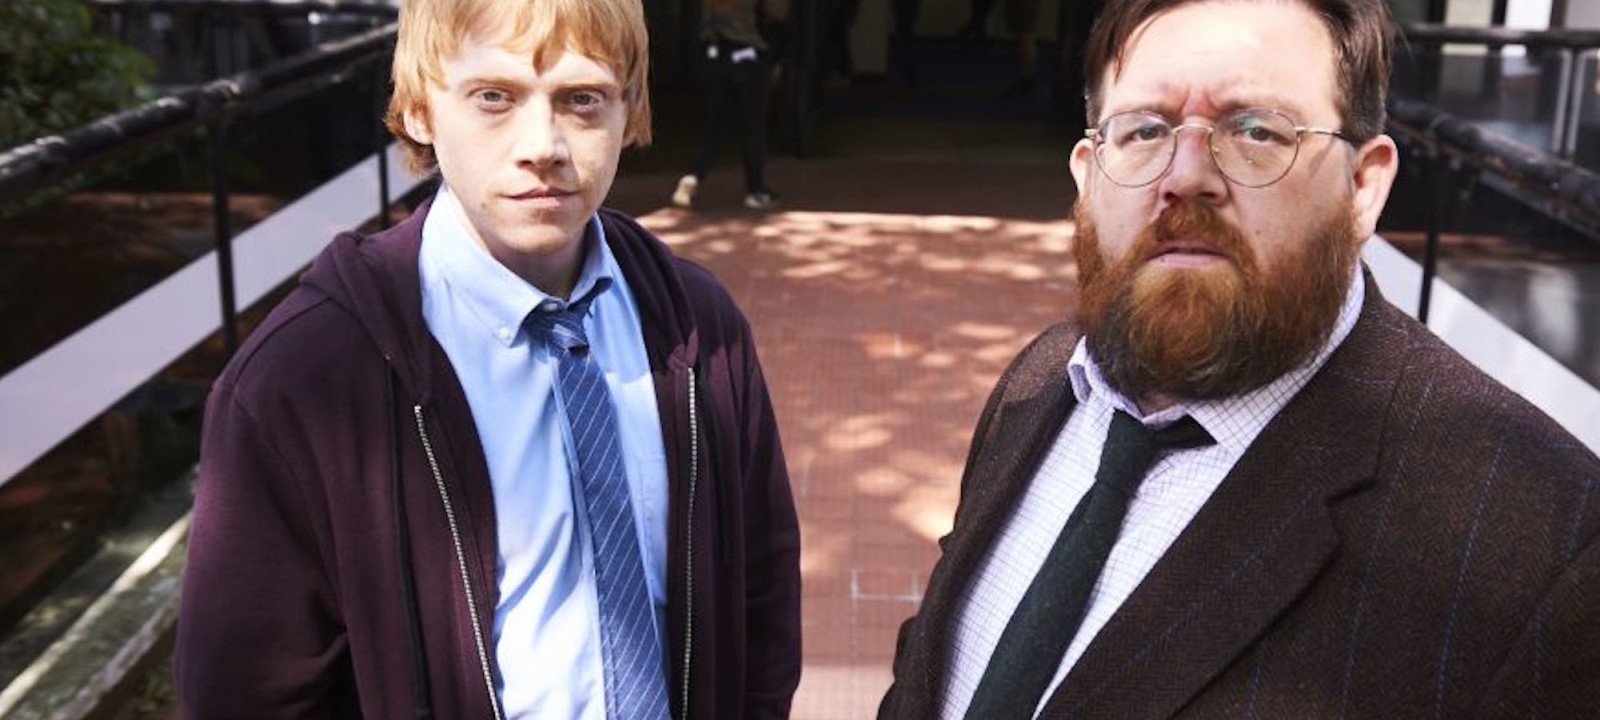 Rupert Grint and Nick Frost in 'Sick Note'